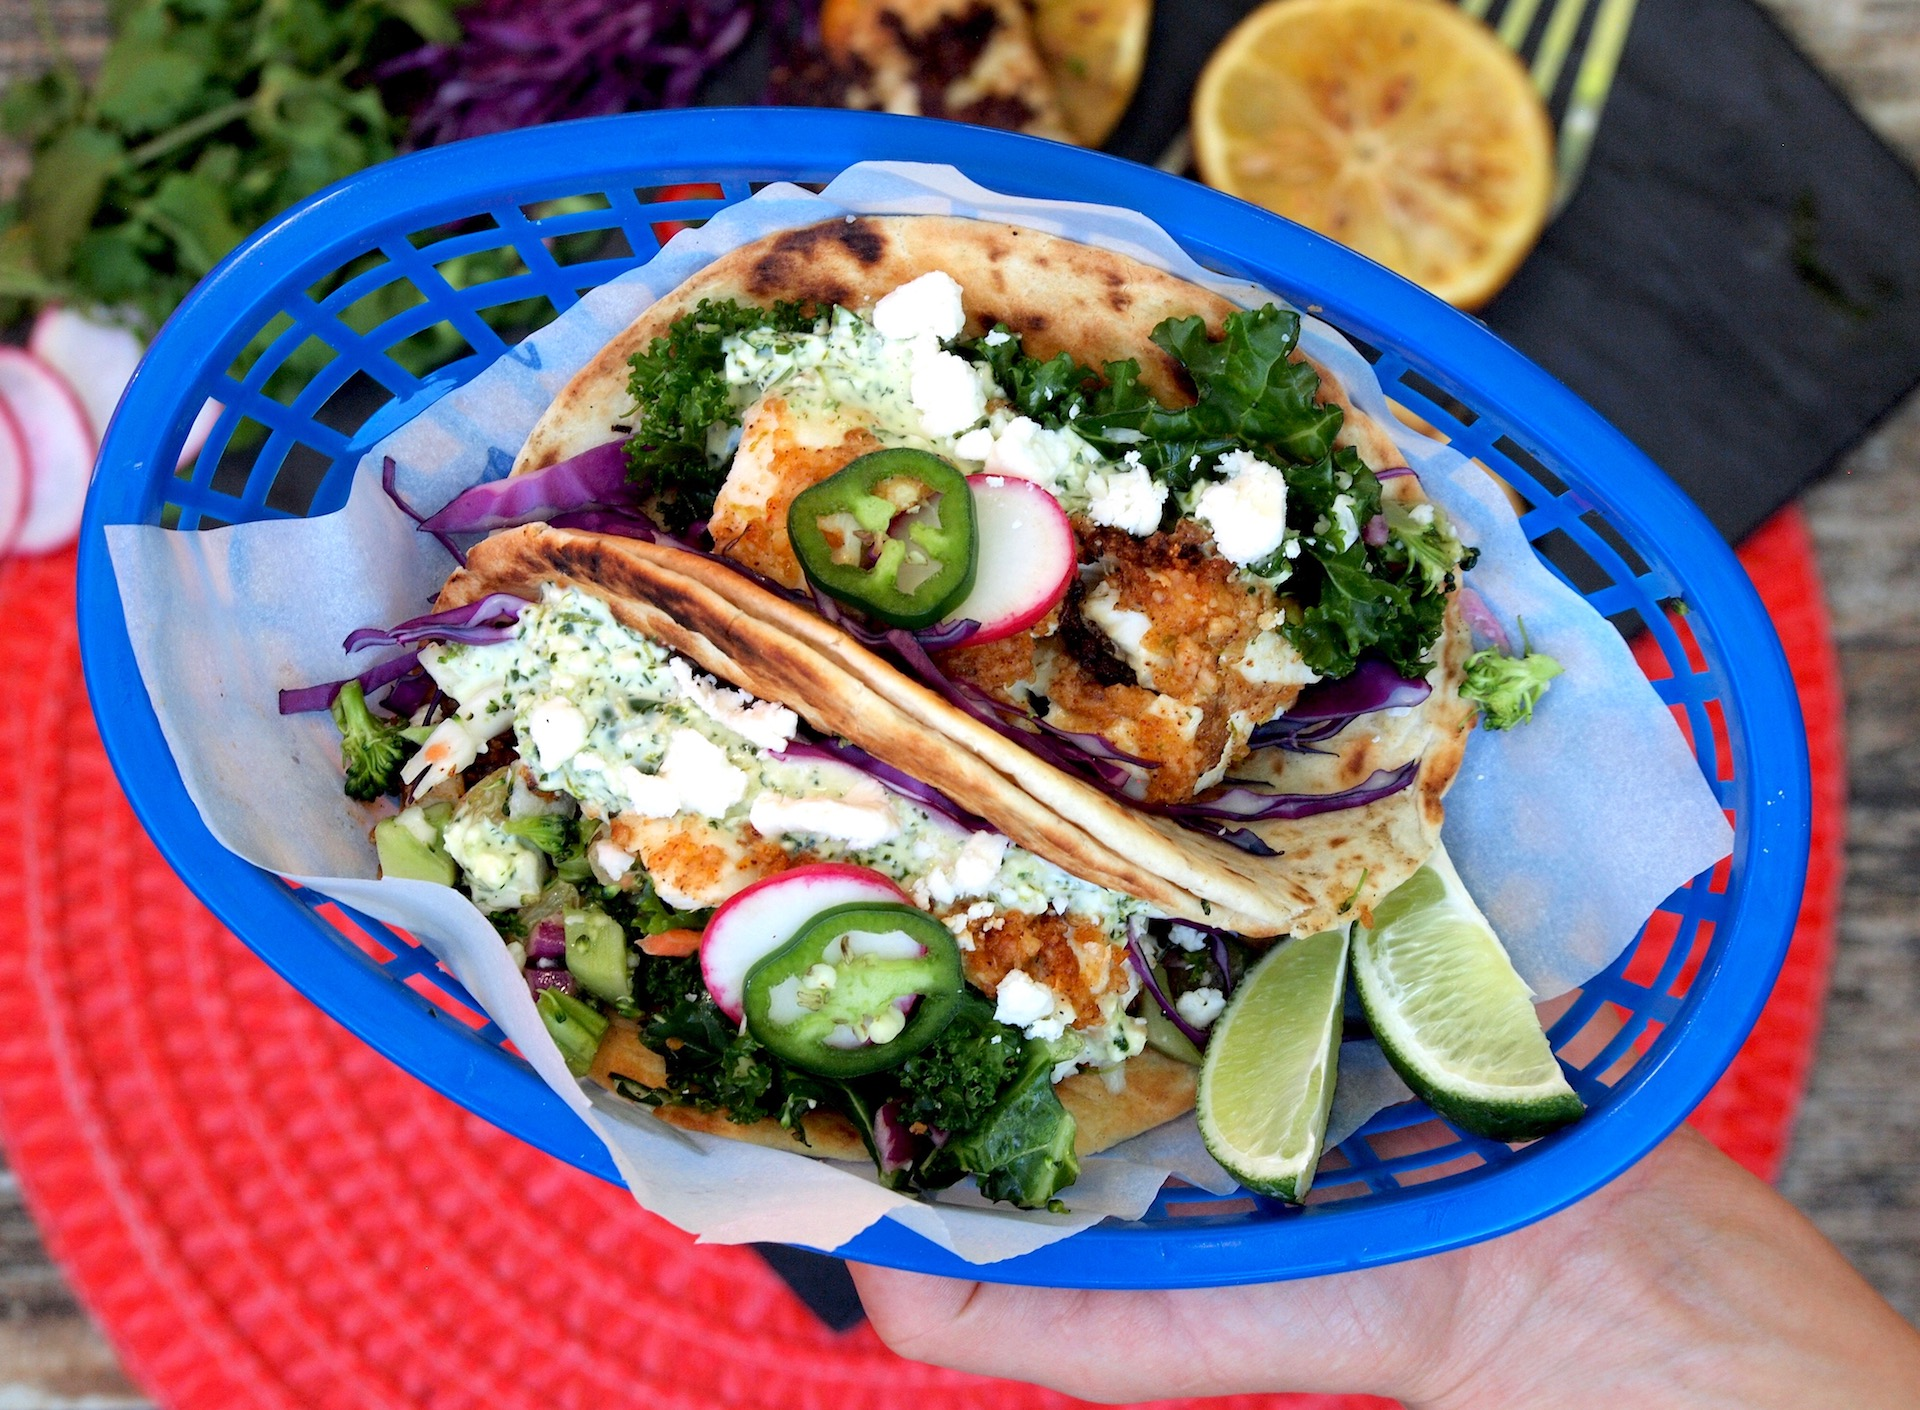 Chili and Parmesan Encrusted Grilled Fish Tacos